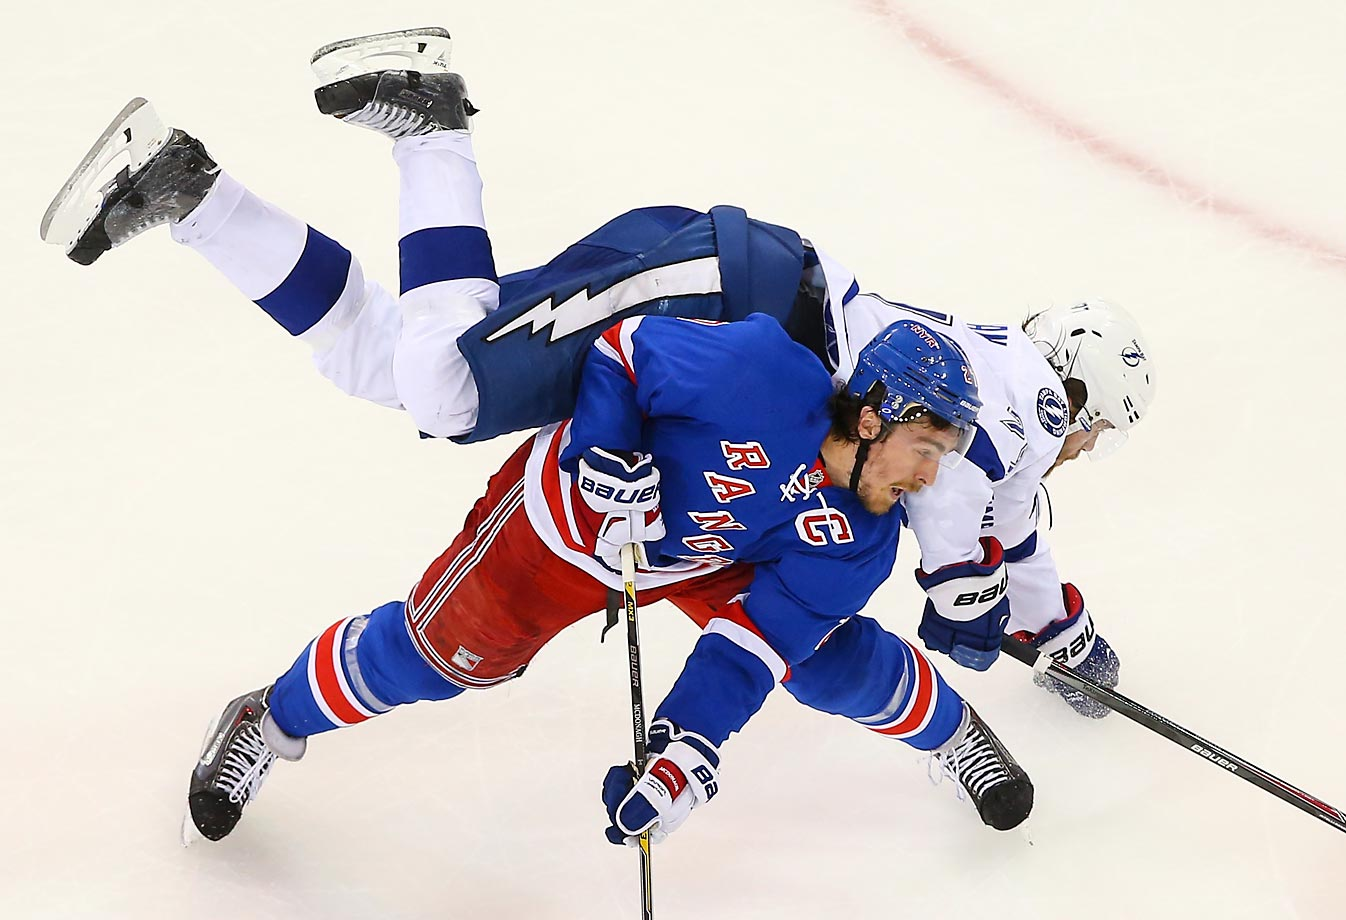 Ryan McDonagh of the New York Rangers upends Victor Hedman of the Tampa Bay Lightning in Game 1 of the Eastern Conference Final.